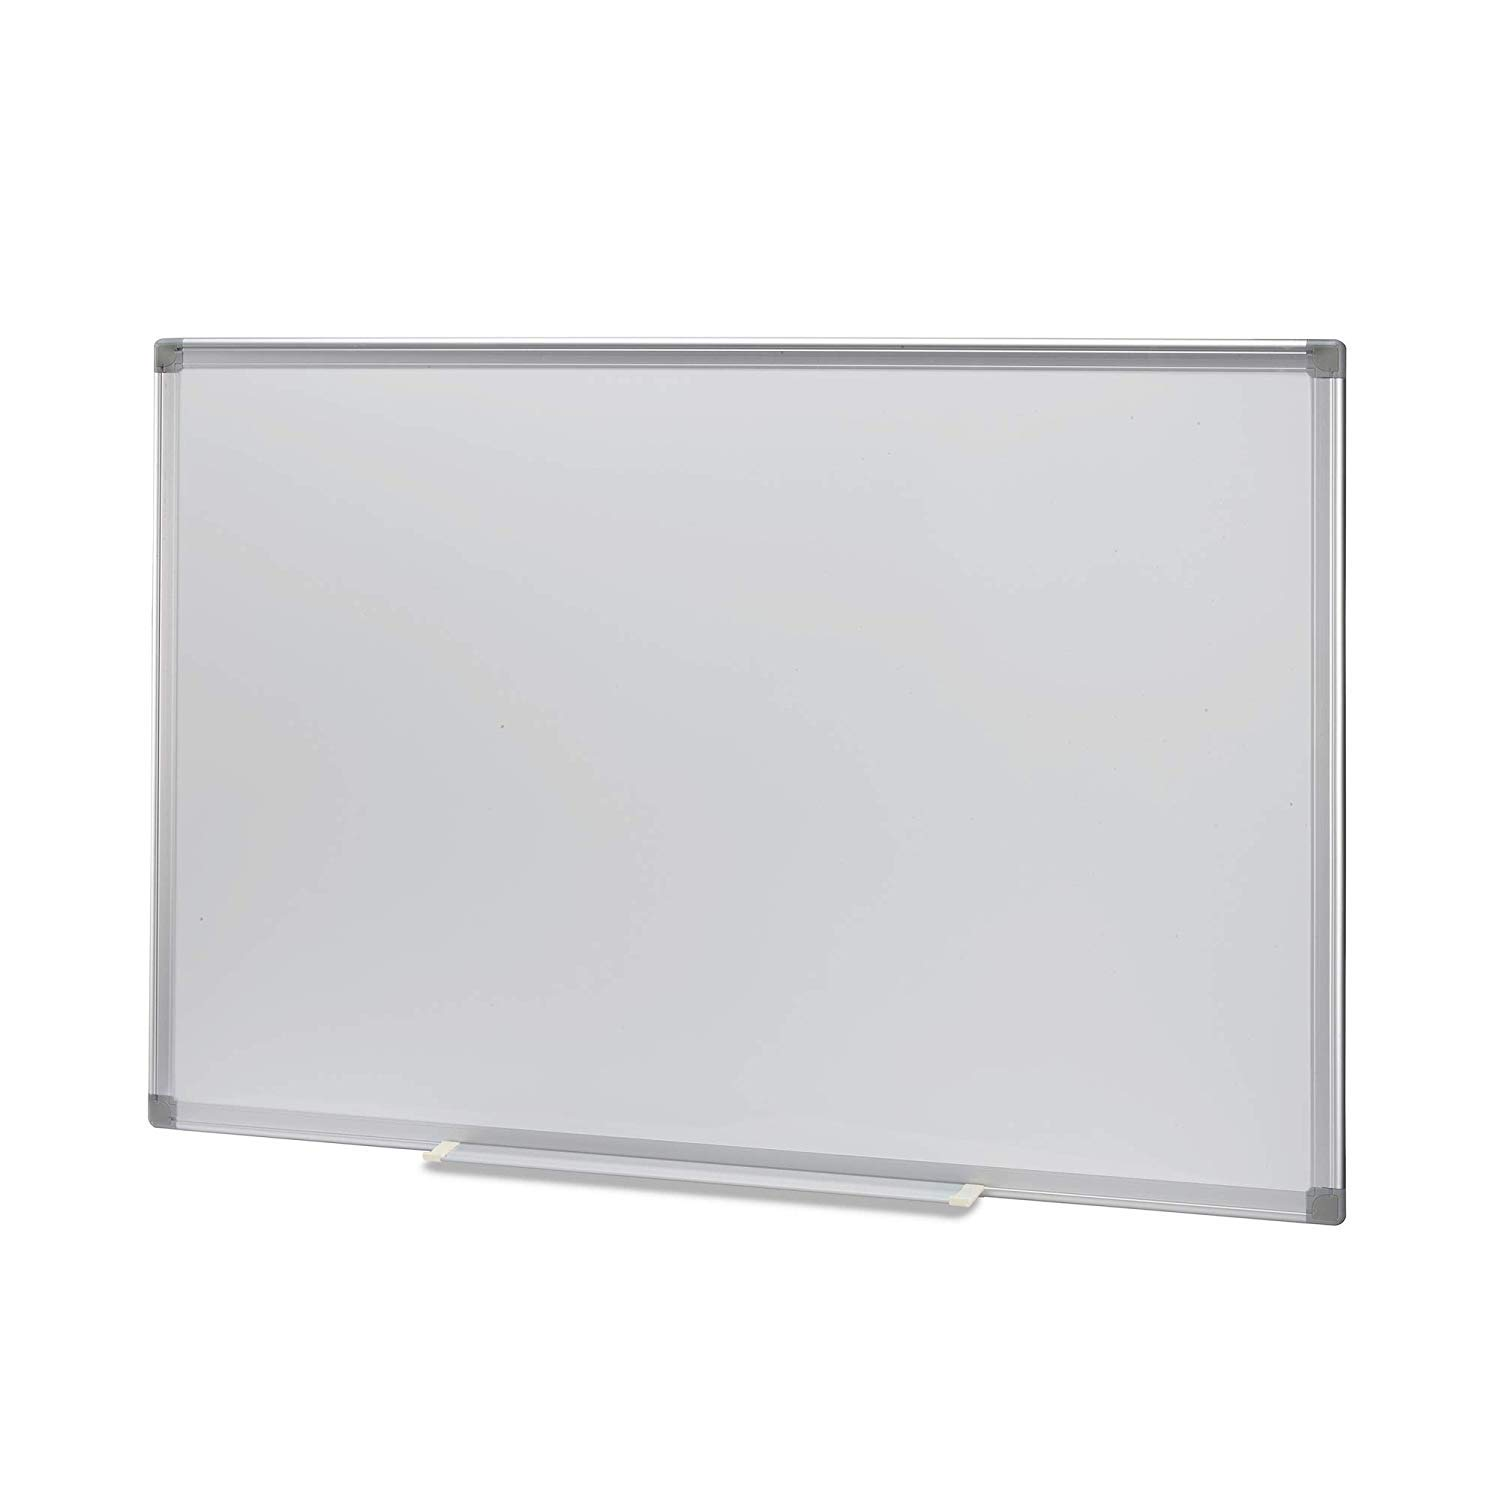 """Parker8 24"""" x 36"""" Pro Sturdy Whiteboard w/Durable Pen Tray - Easy to Erase - Clean Magnetic and Quality Lightweight Board"""